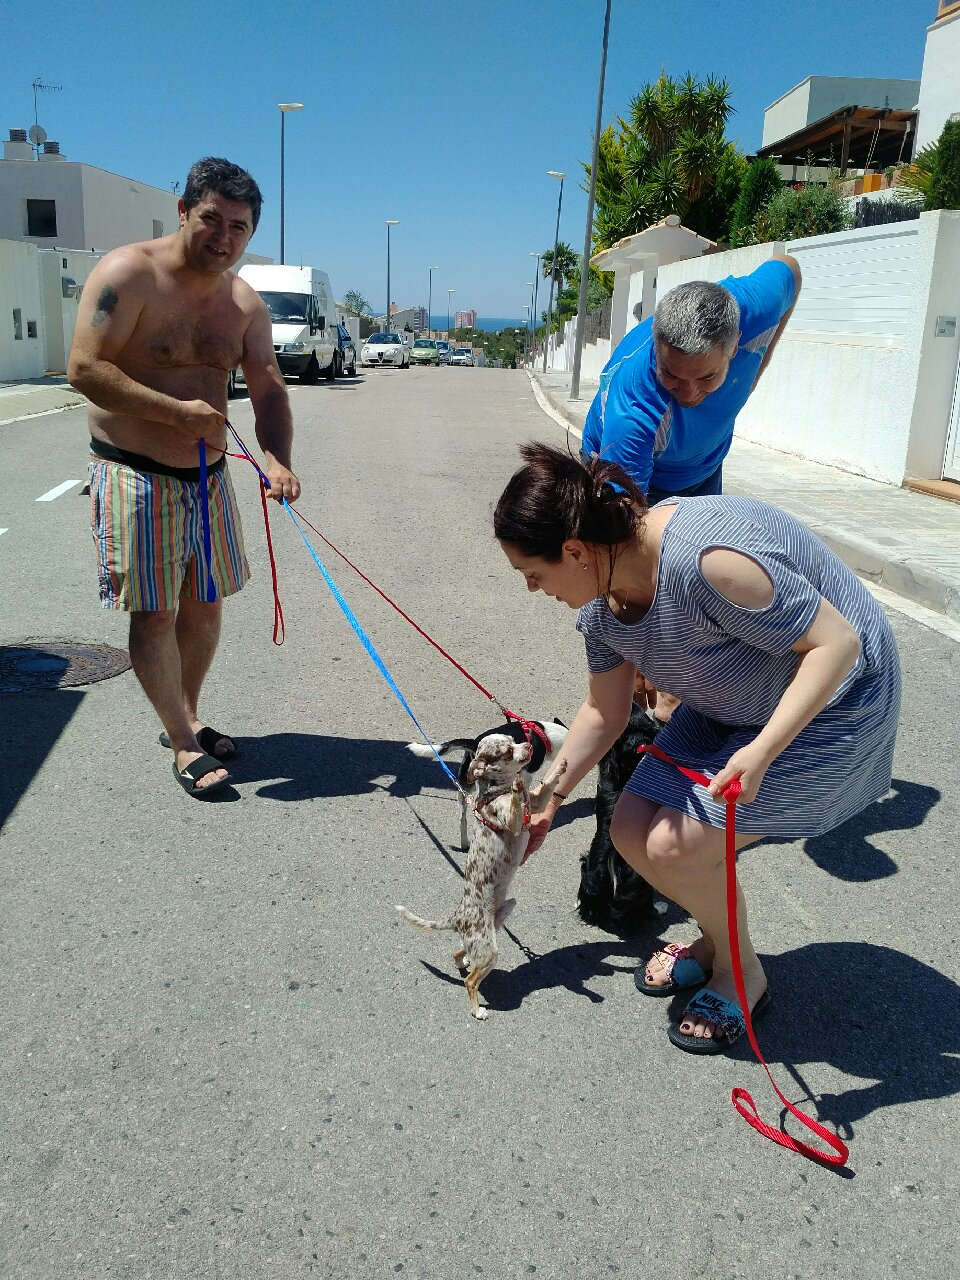 It was a delightful sunny day when we delivered the dogs in Sitges